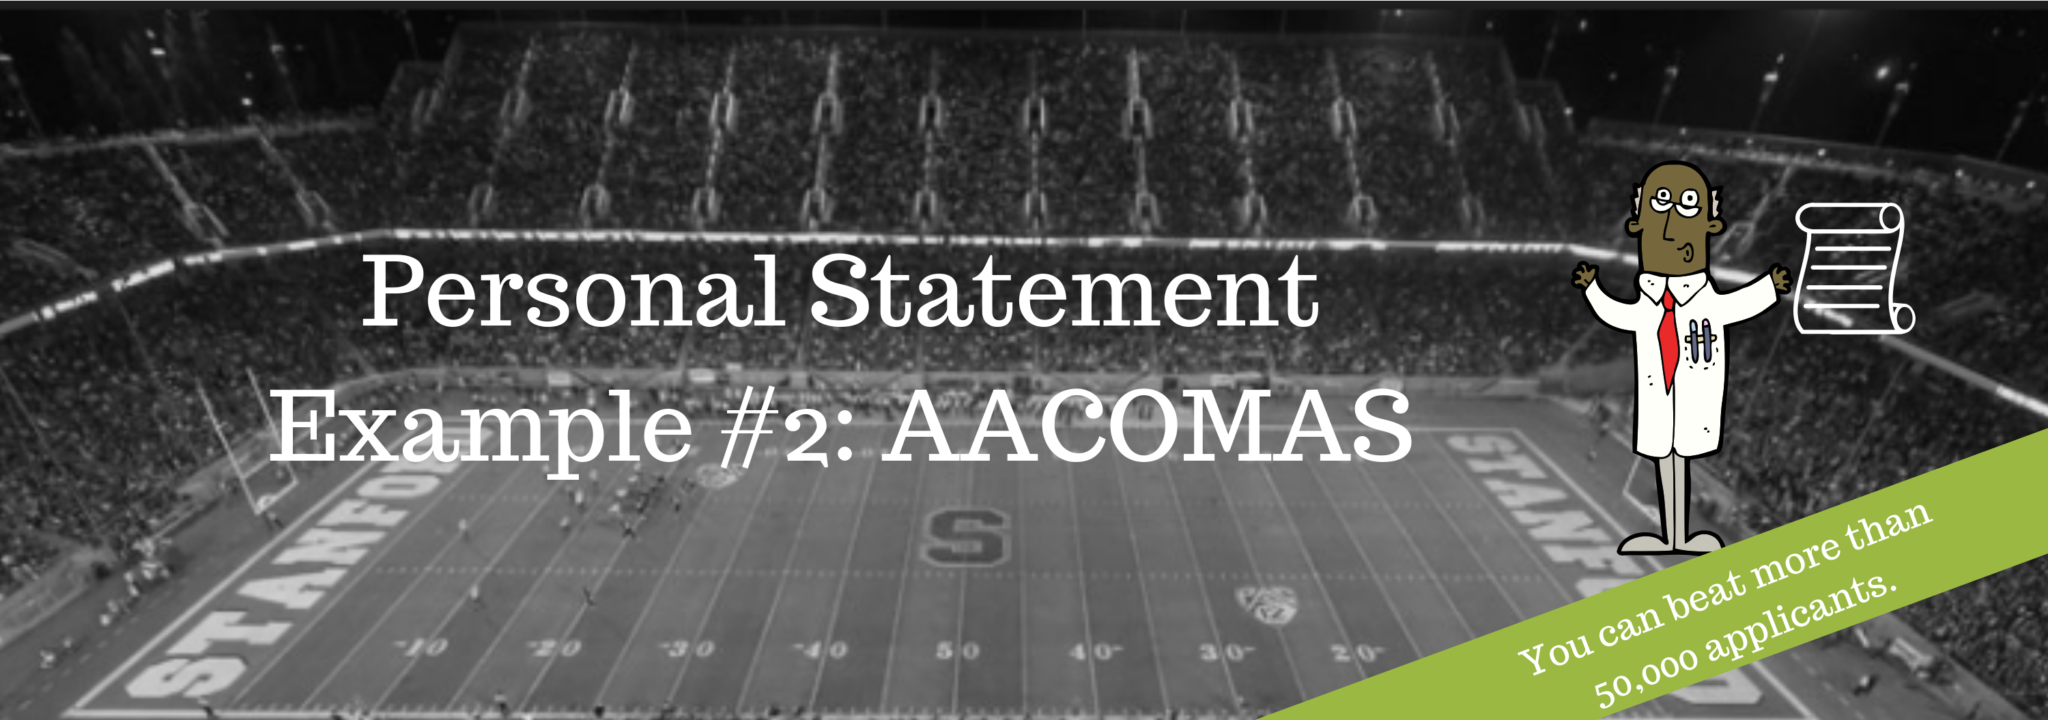 Personal Statement Example #2 AACOMAS